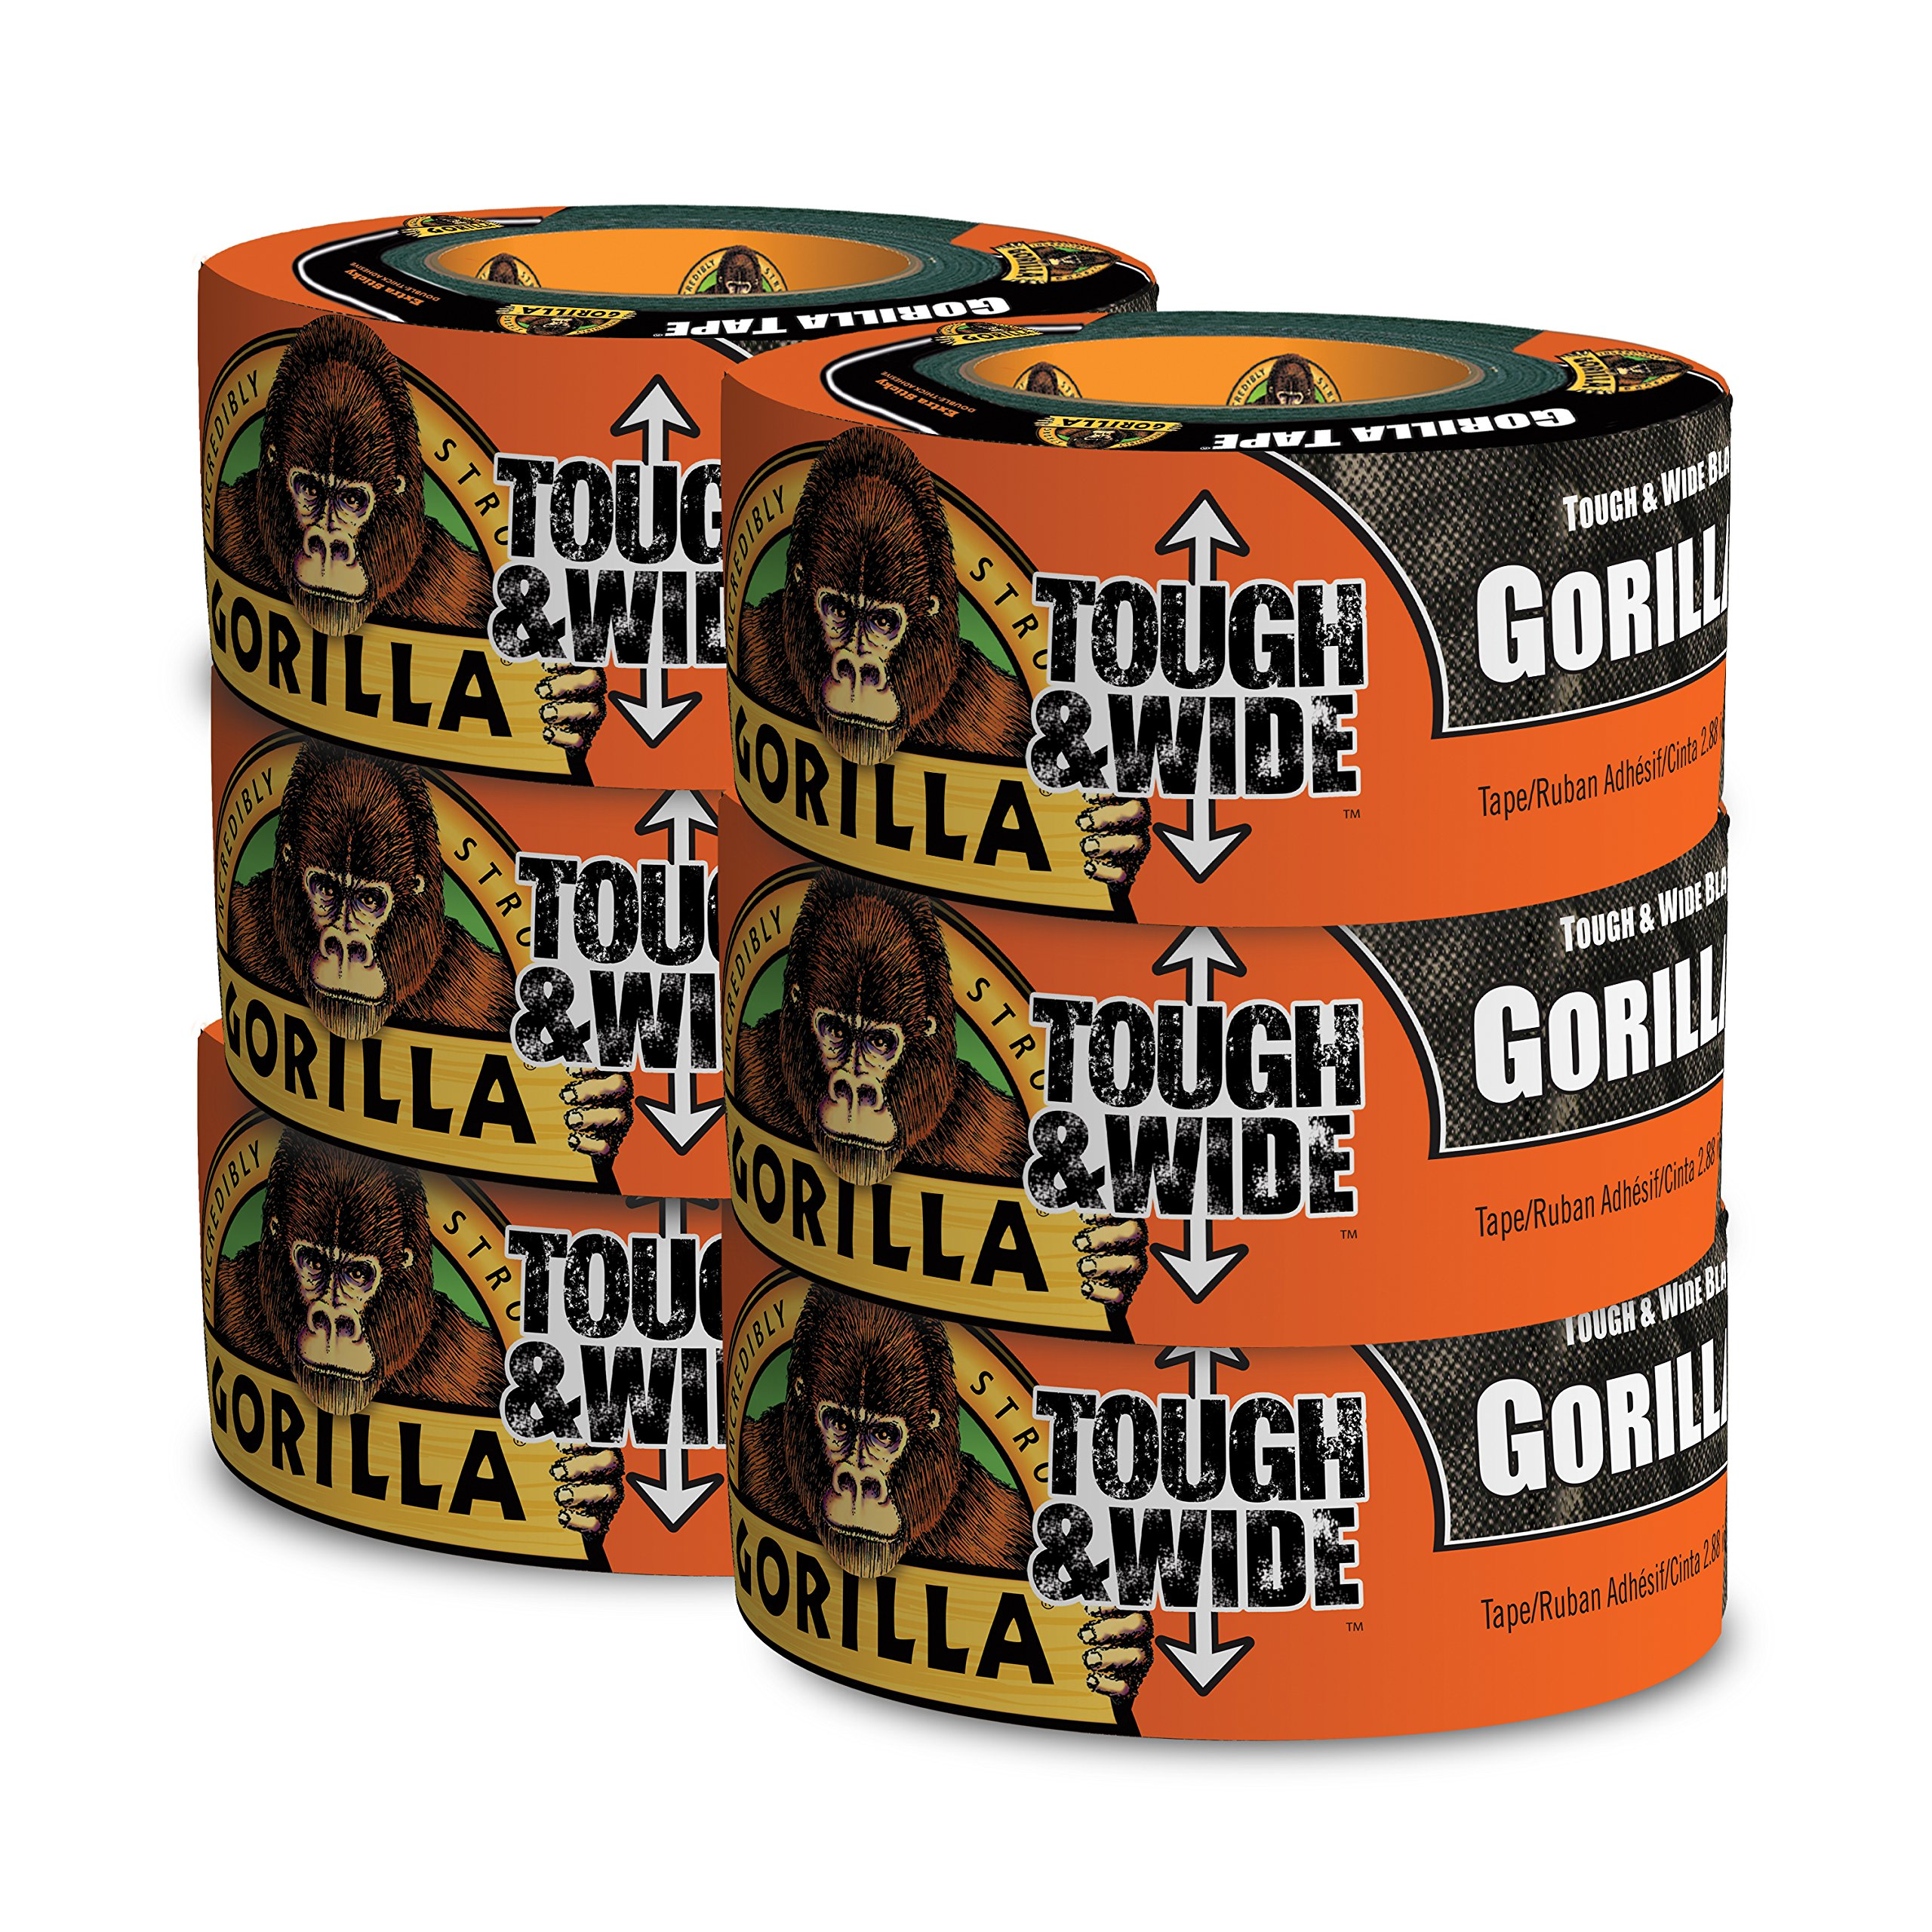 Gorilla Tape, Black Tough & Wide Duct Tape, 2.88'' x 30 yd, Black, (Pack of 6) by Gorilla